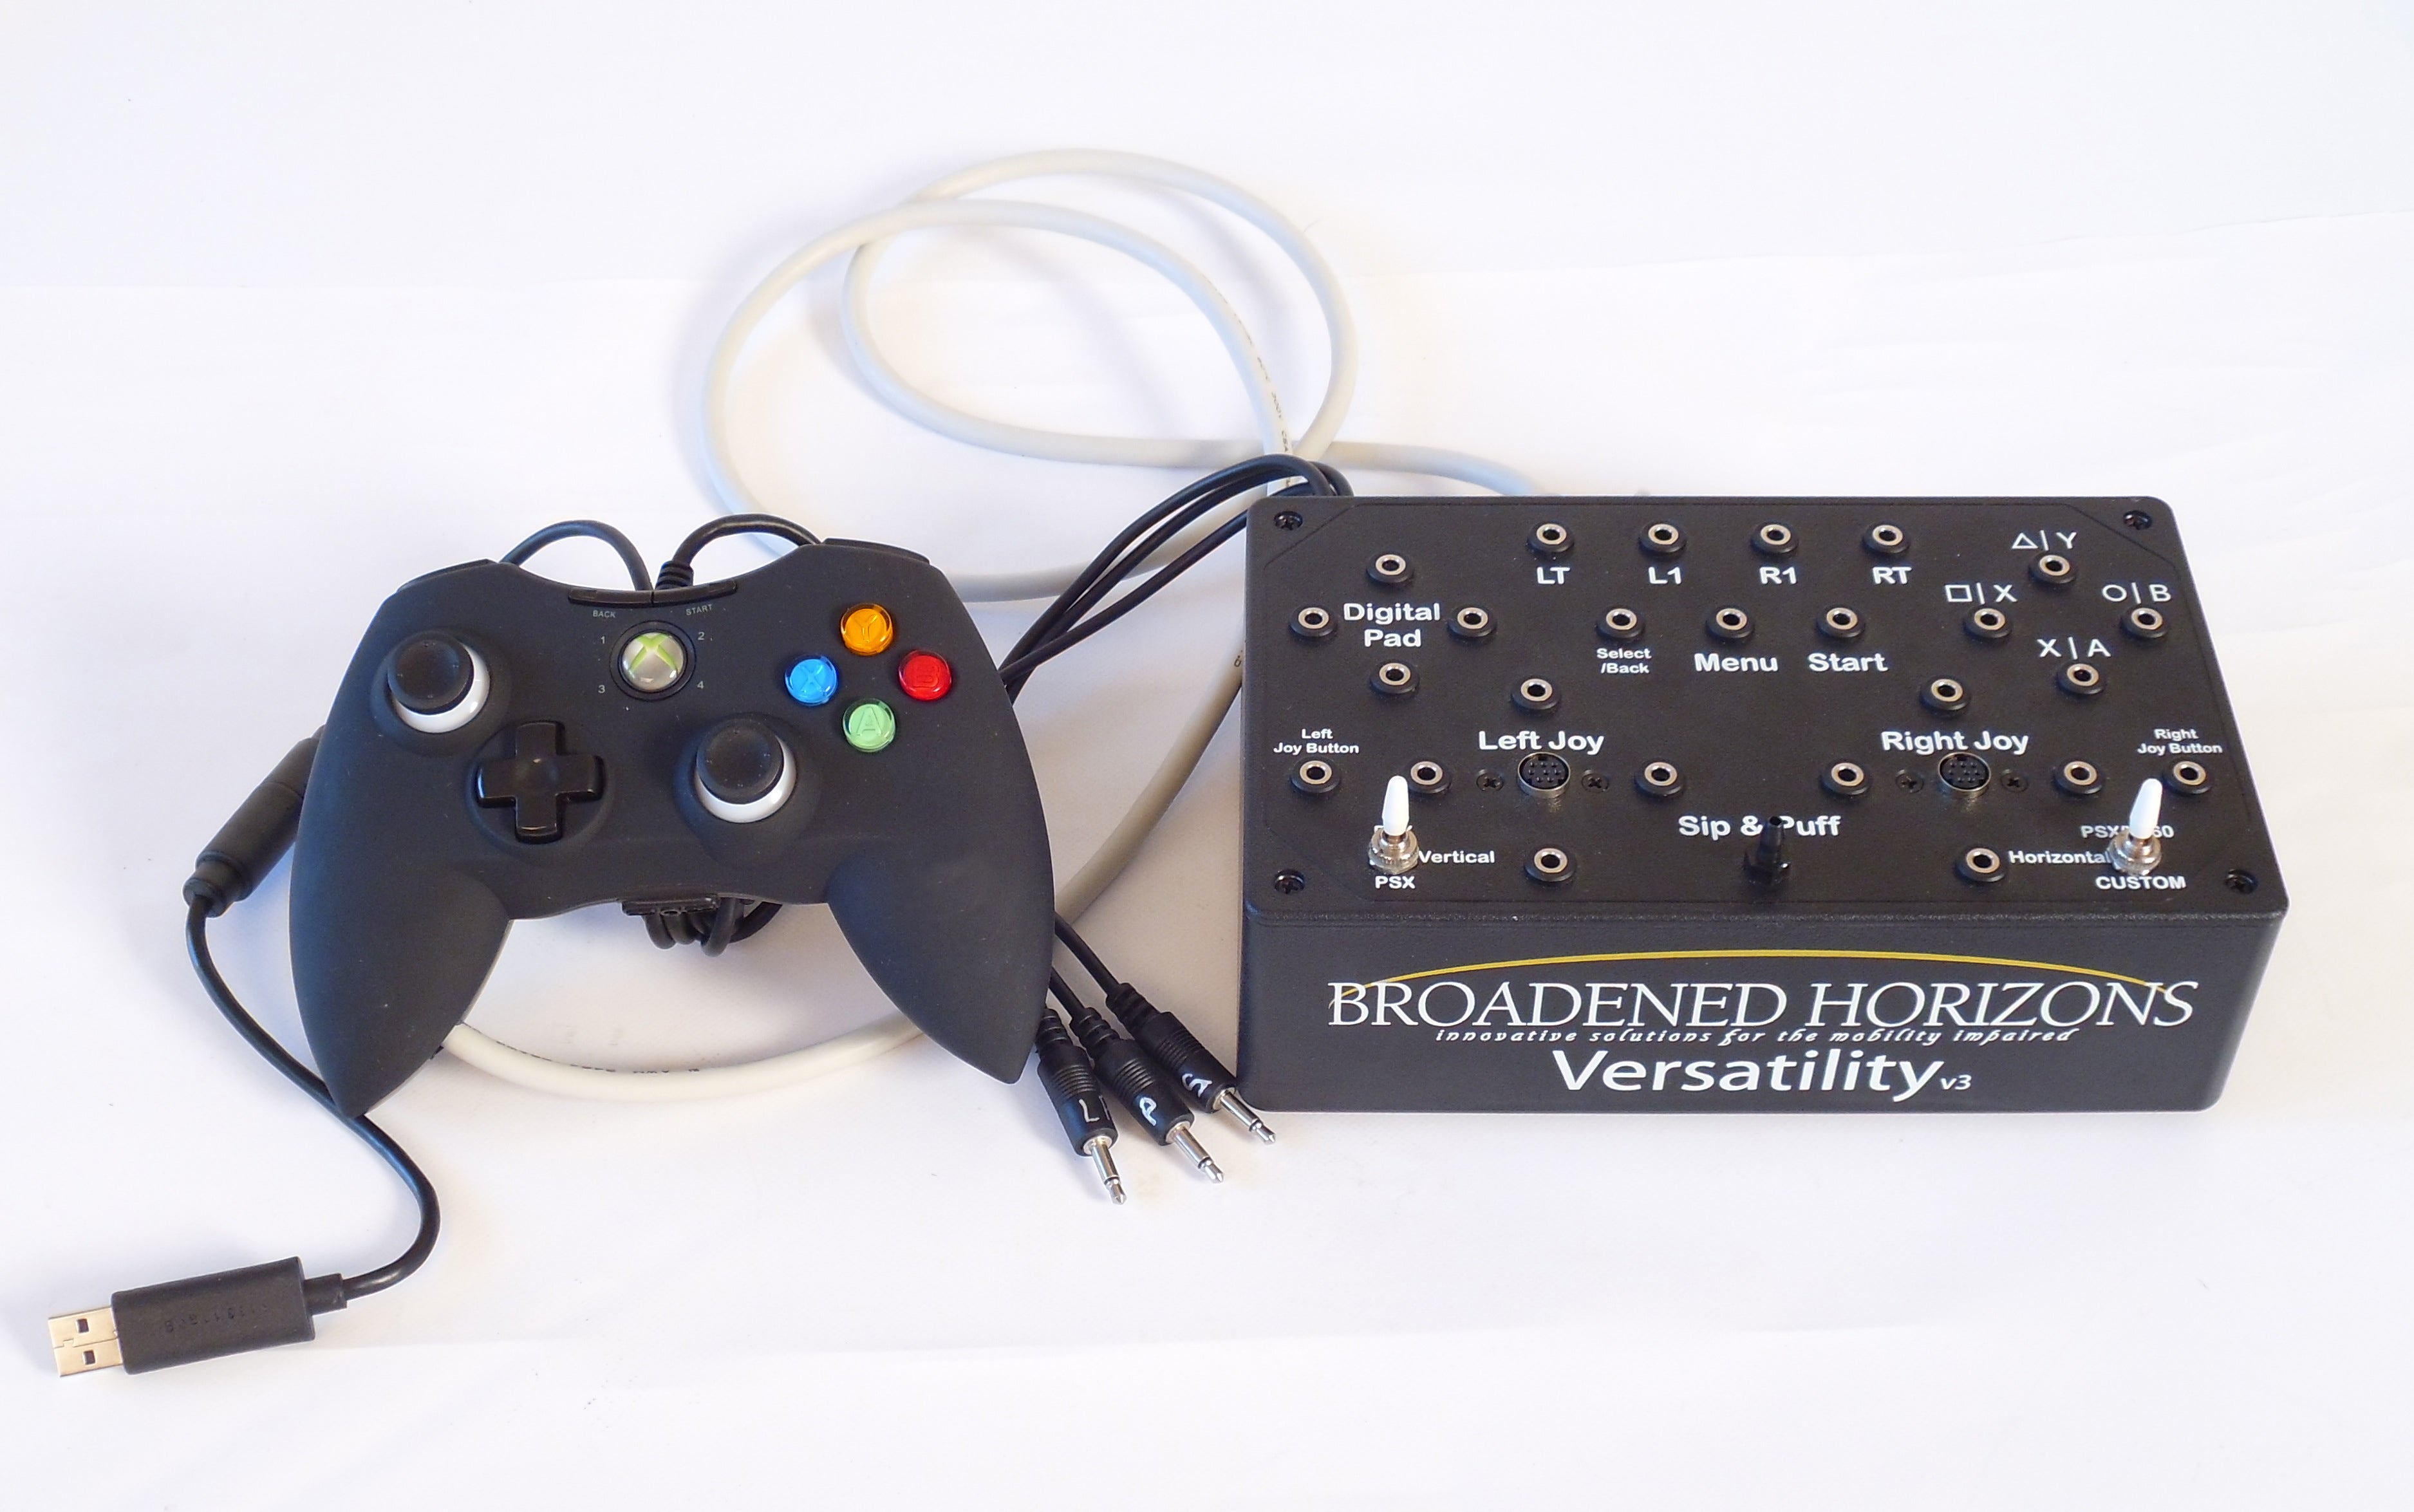 Versatility v3 for Xbox 360 & PC - Optional Xbox One & PS4 - Broadened Horizons Direct